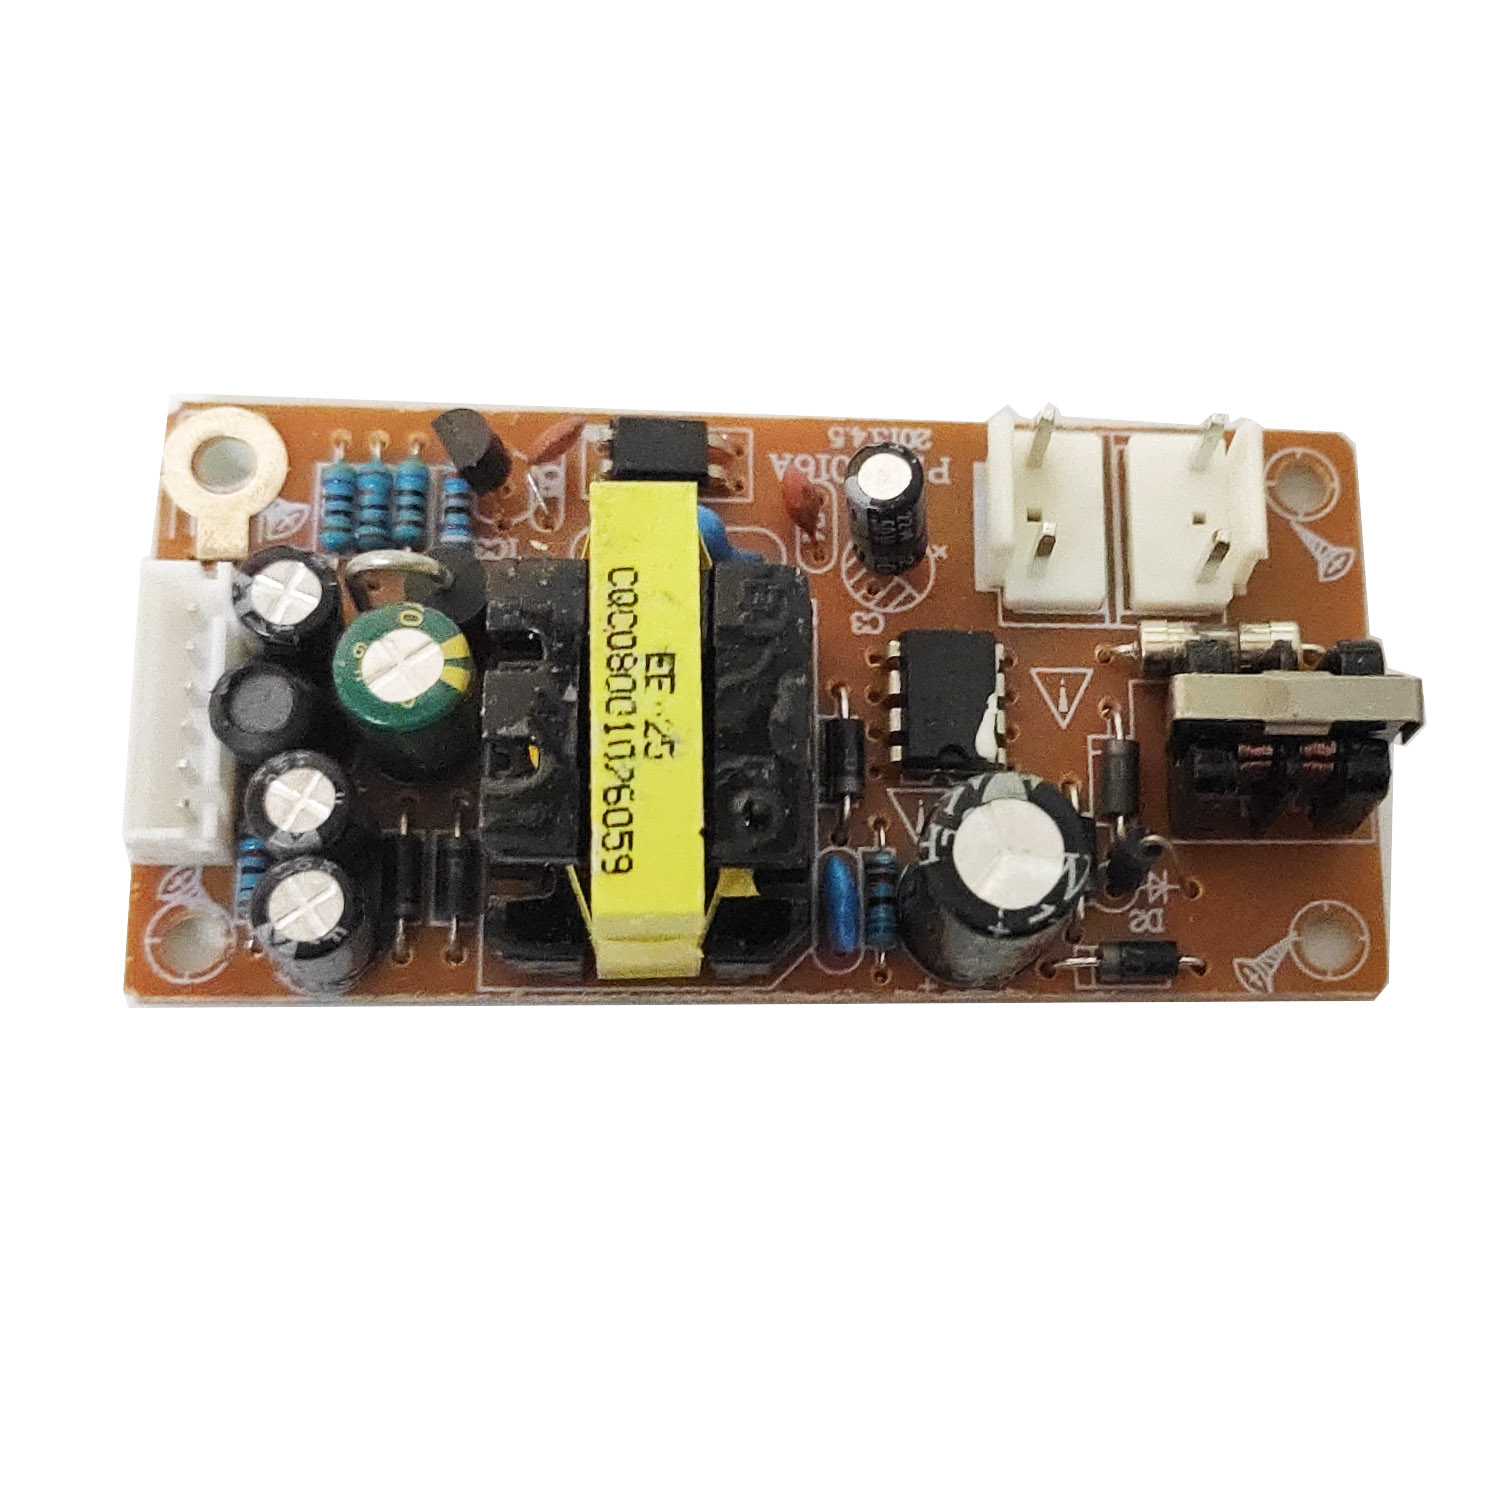 Universal EVD Switching Power Supply Module DVD Power Board Home 5V 12V -12V Original Accessories